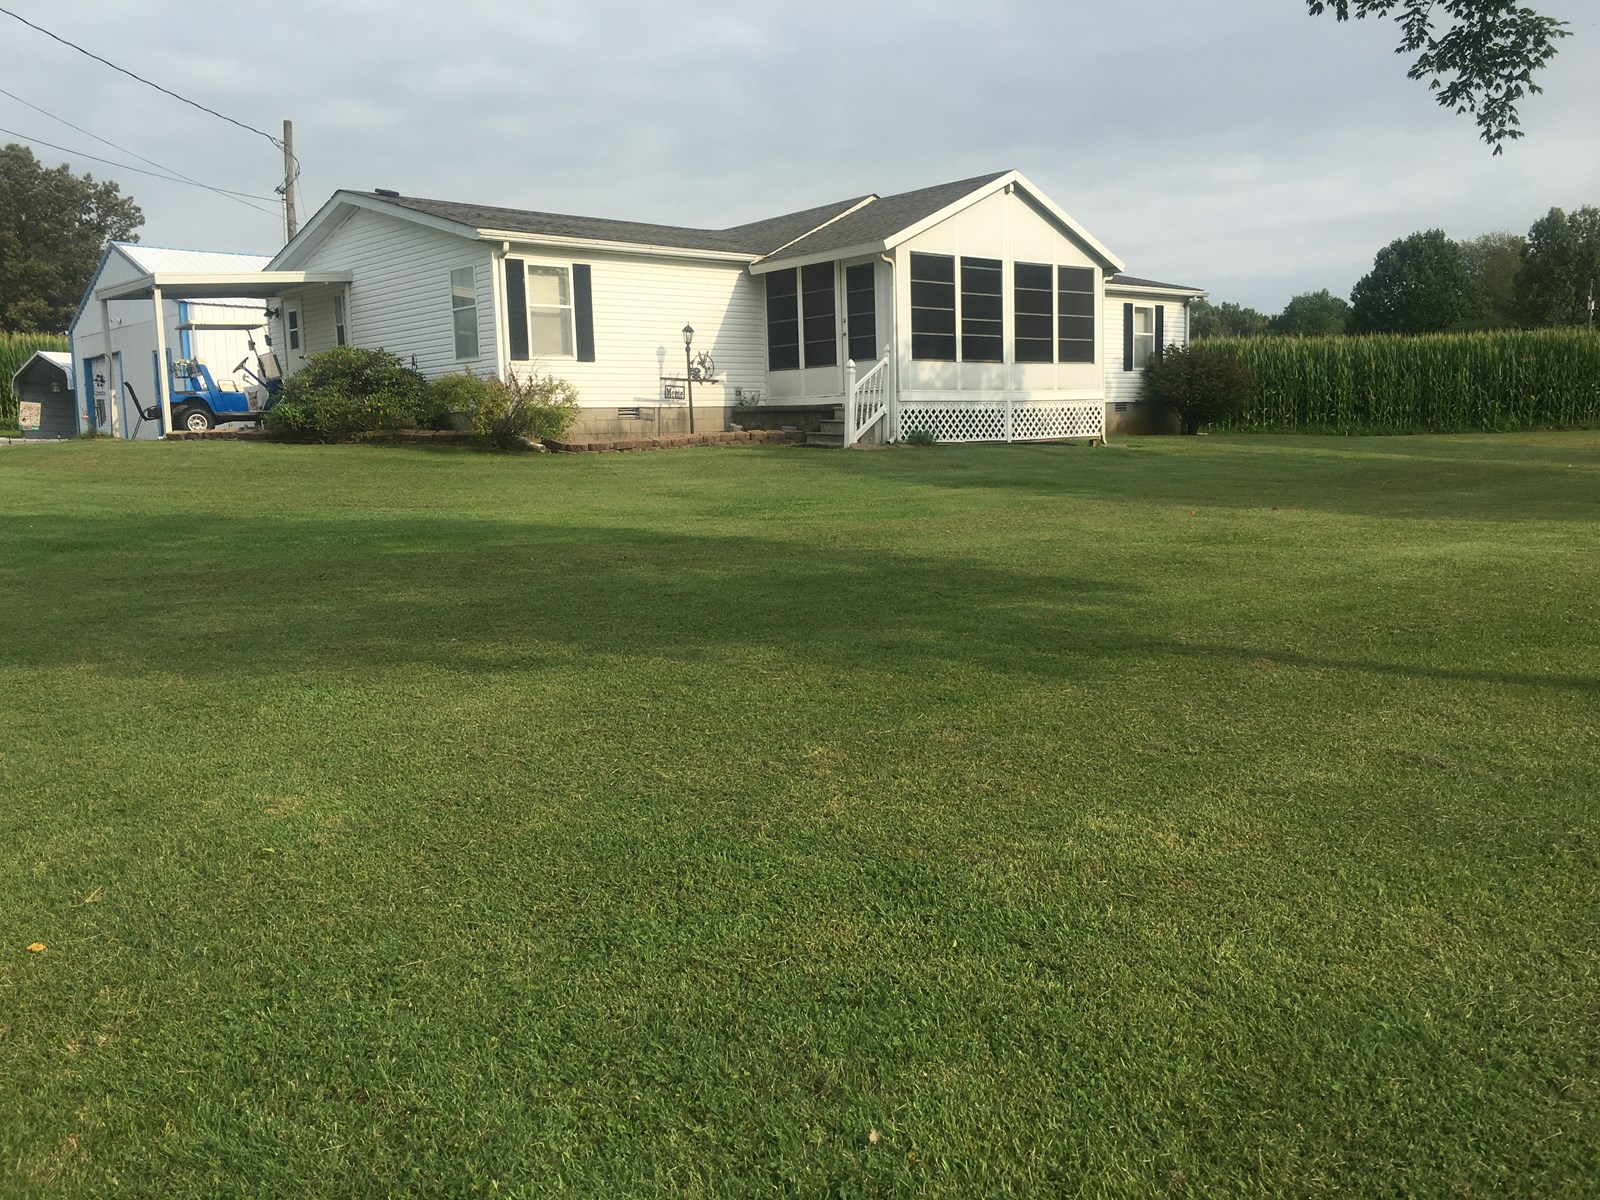 Home and Land for Sale in Western KY